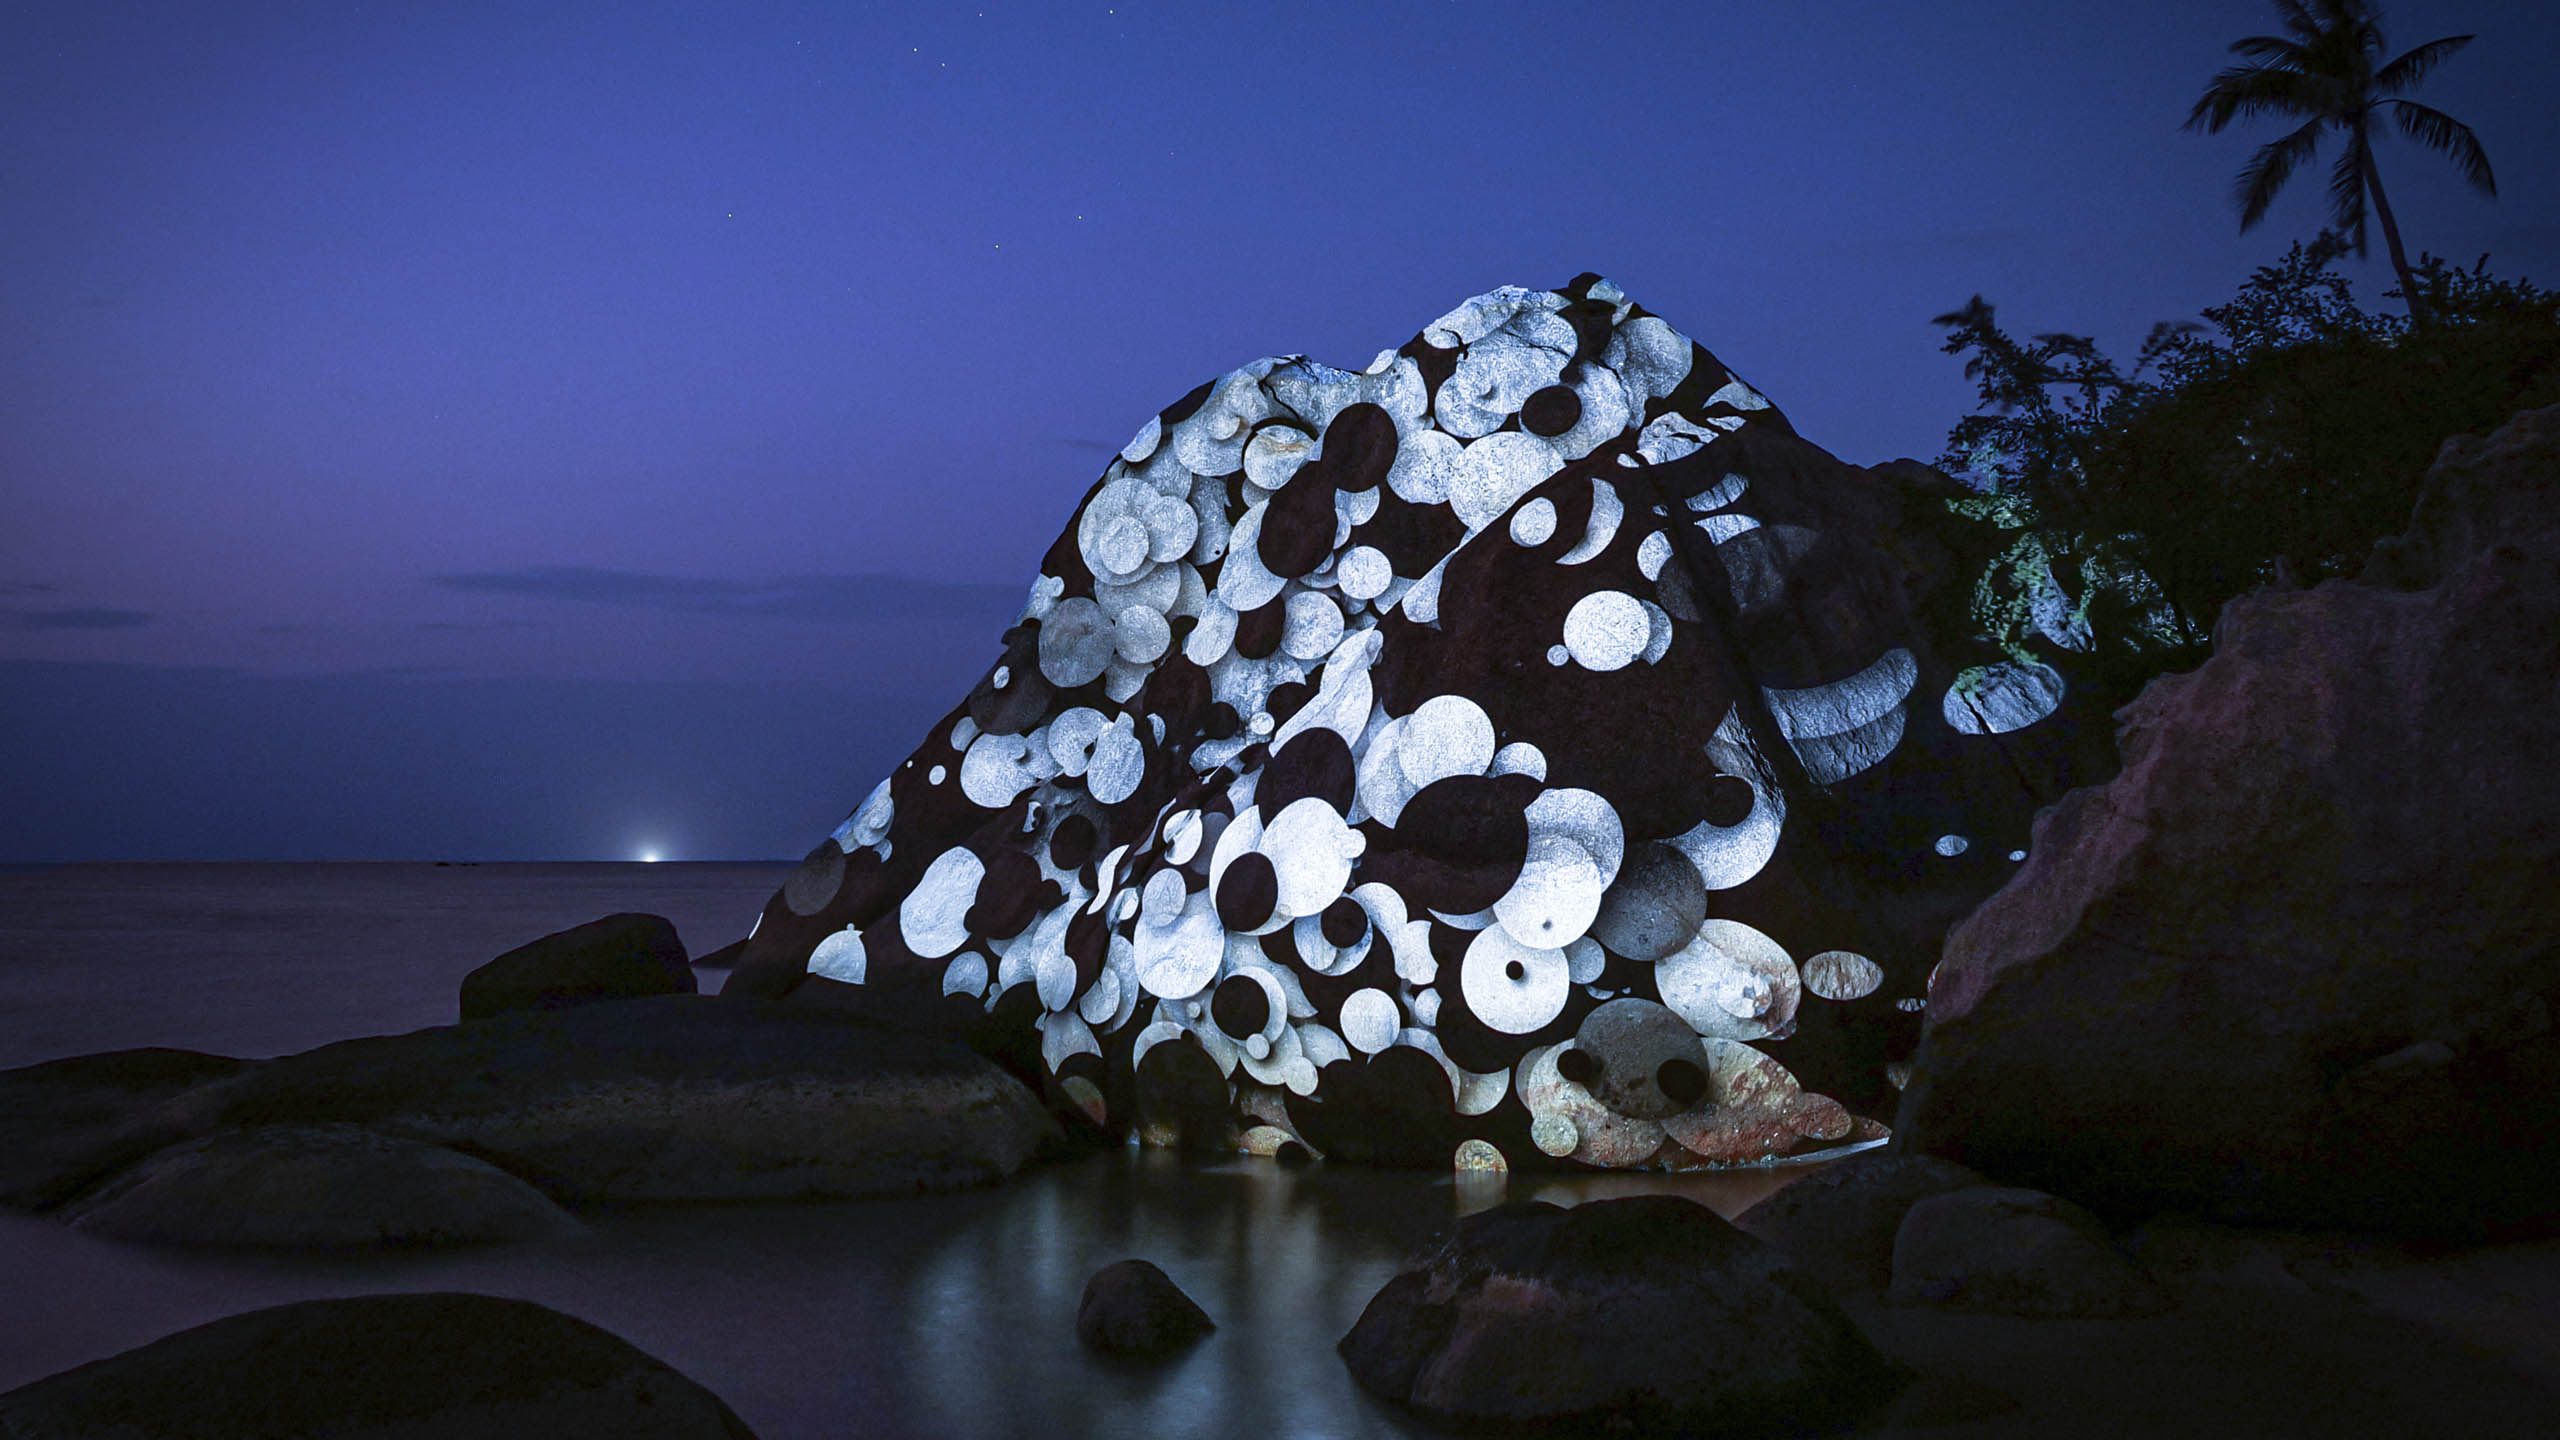 light art, 3d projection mapping with white dots by philipp frank. Located on a rock at the beach